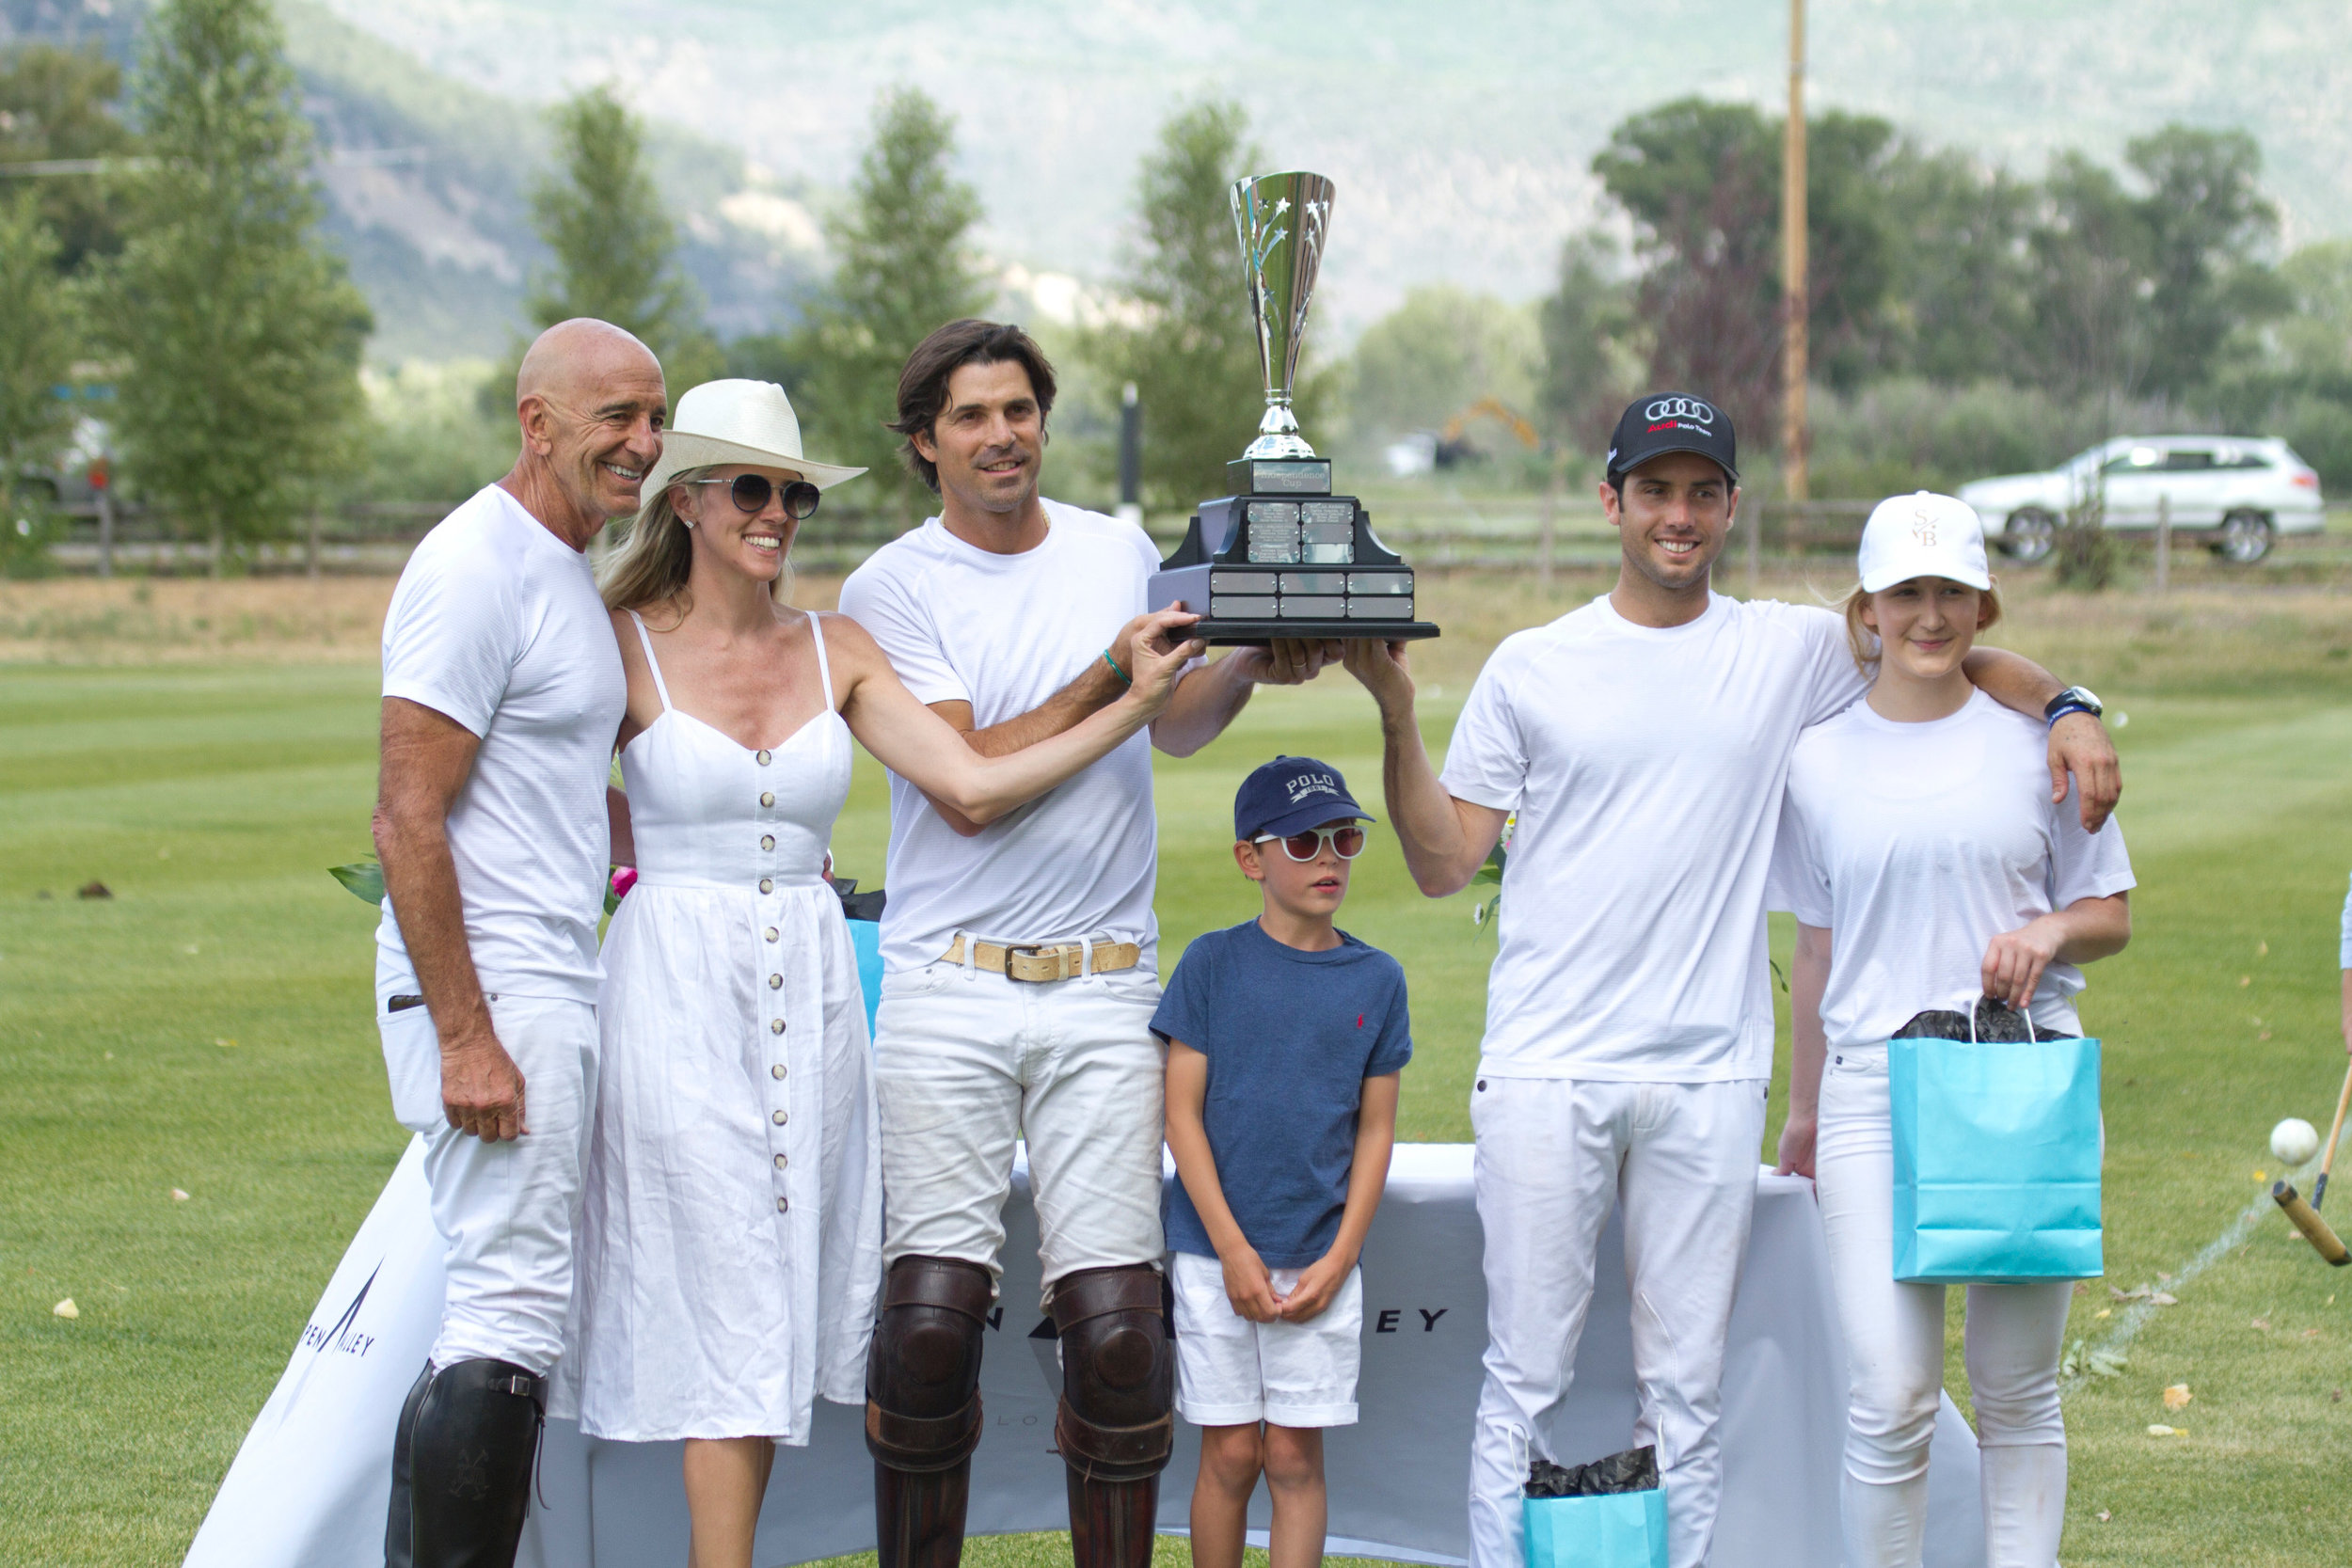 Winning team Piocho players Tom Barrack, Nacho Figueras, Carlitos Gracida and Riley Ganzi.